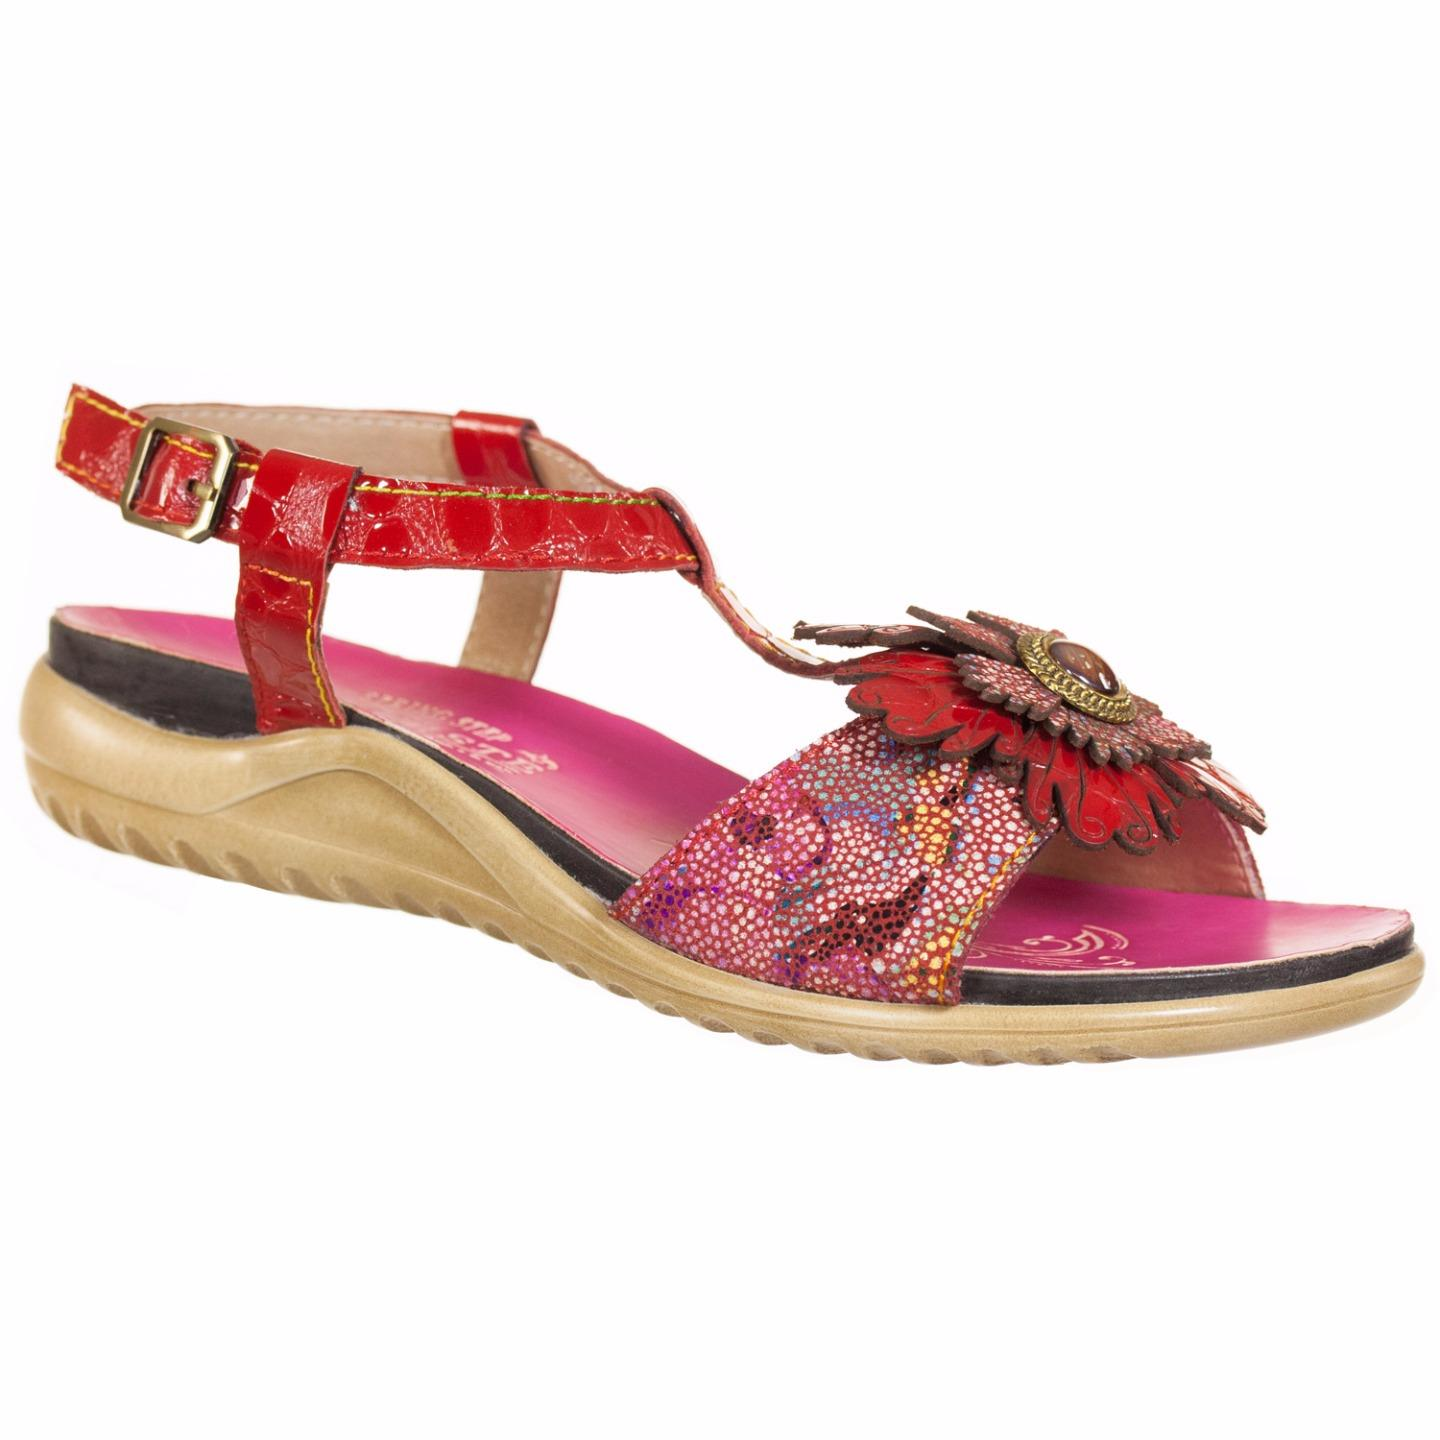 Burlesque L'Artiste Collection By Spring Step Womens Sandal Red Multi EU 37 US 7 by Spring Step